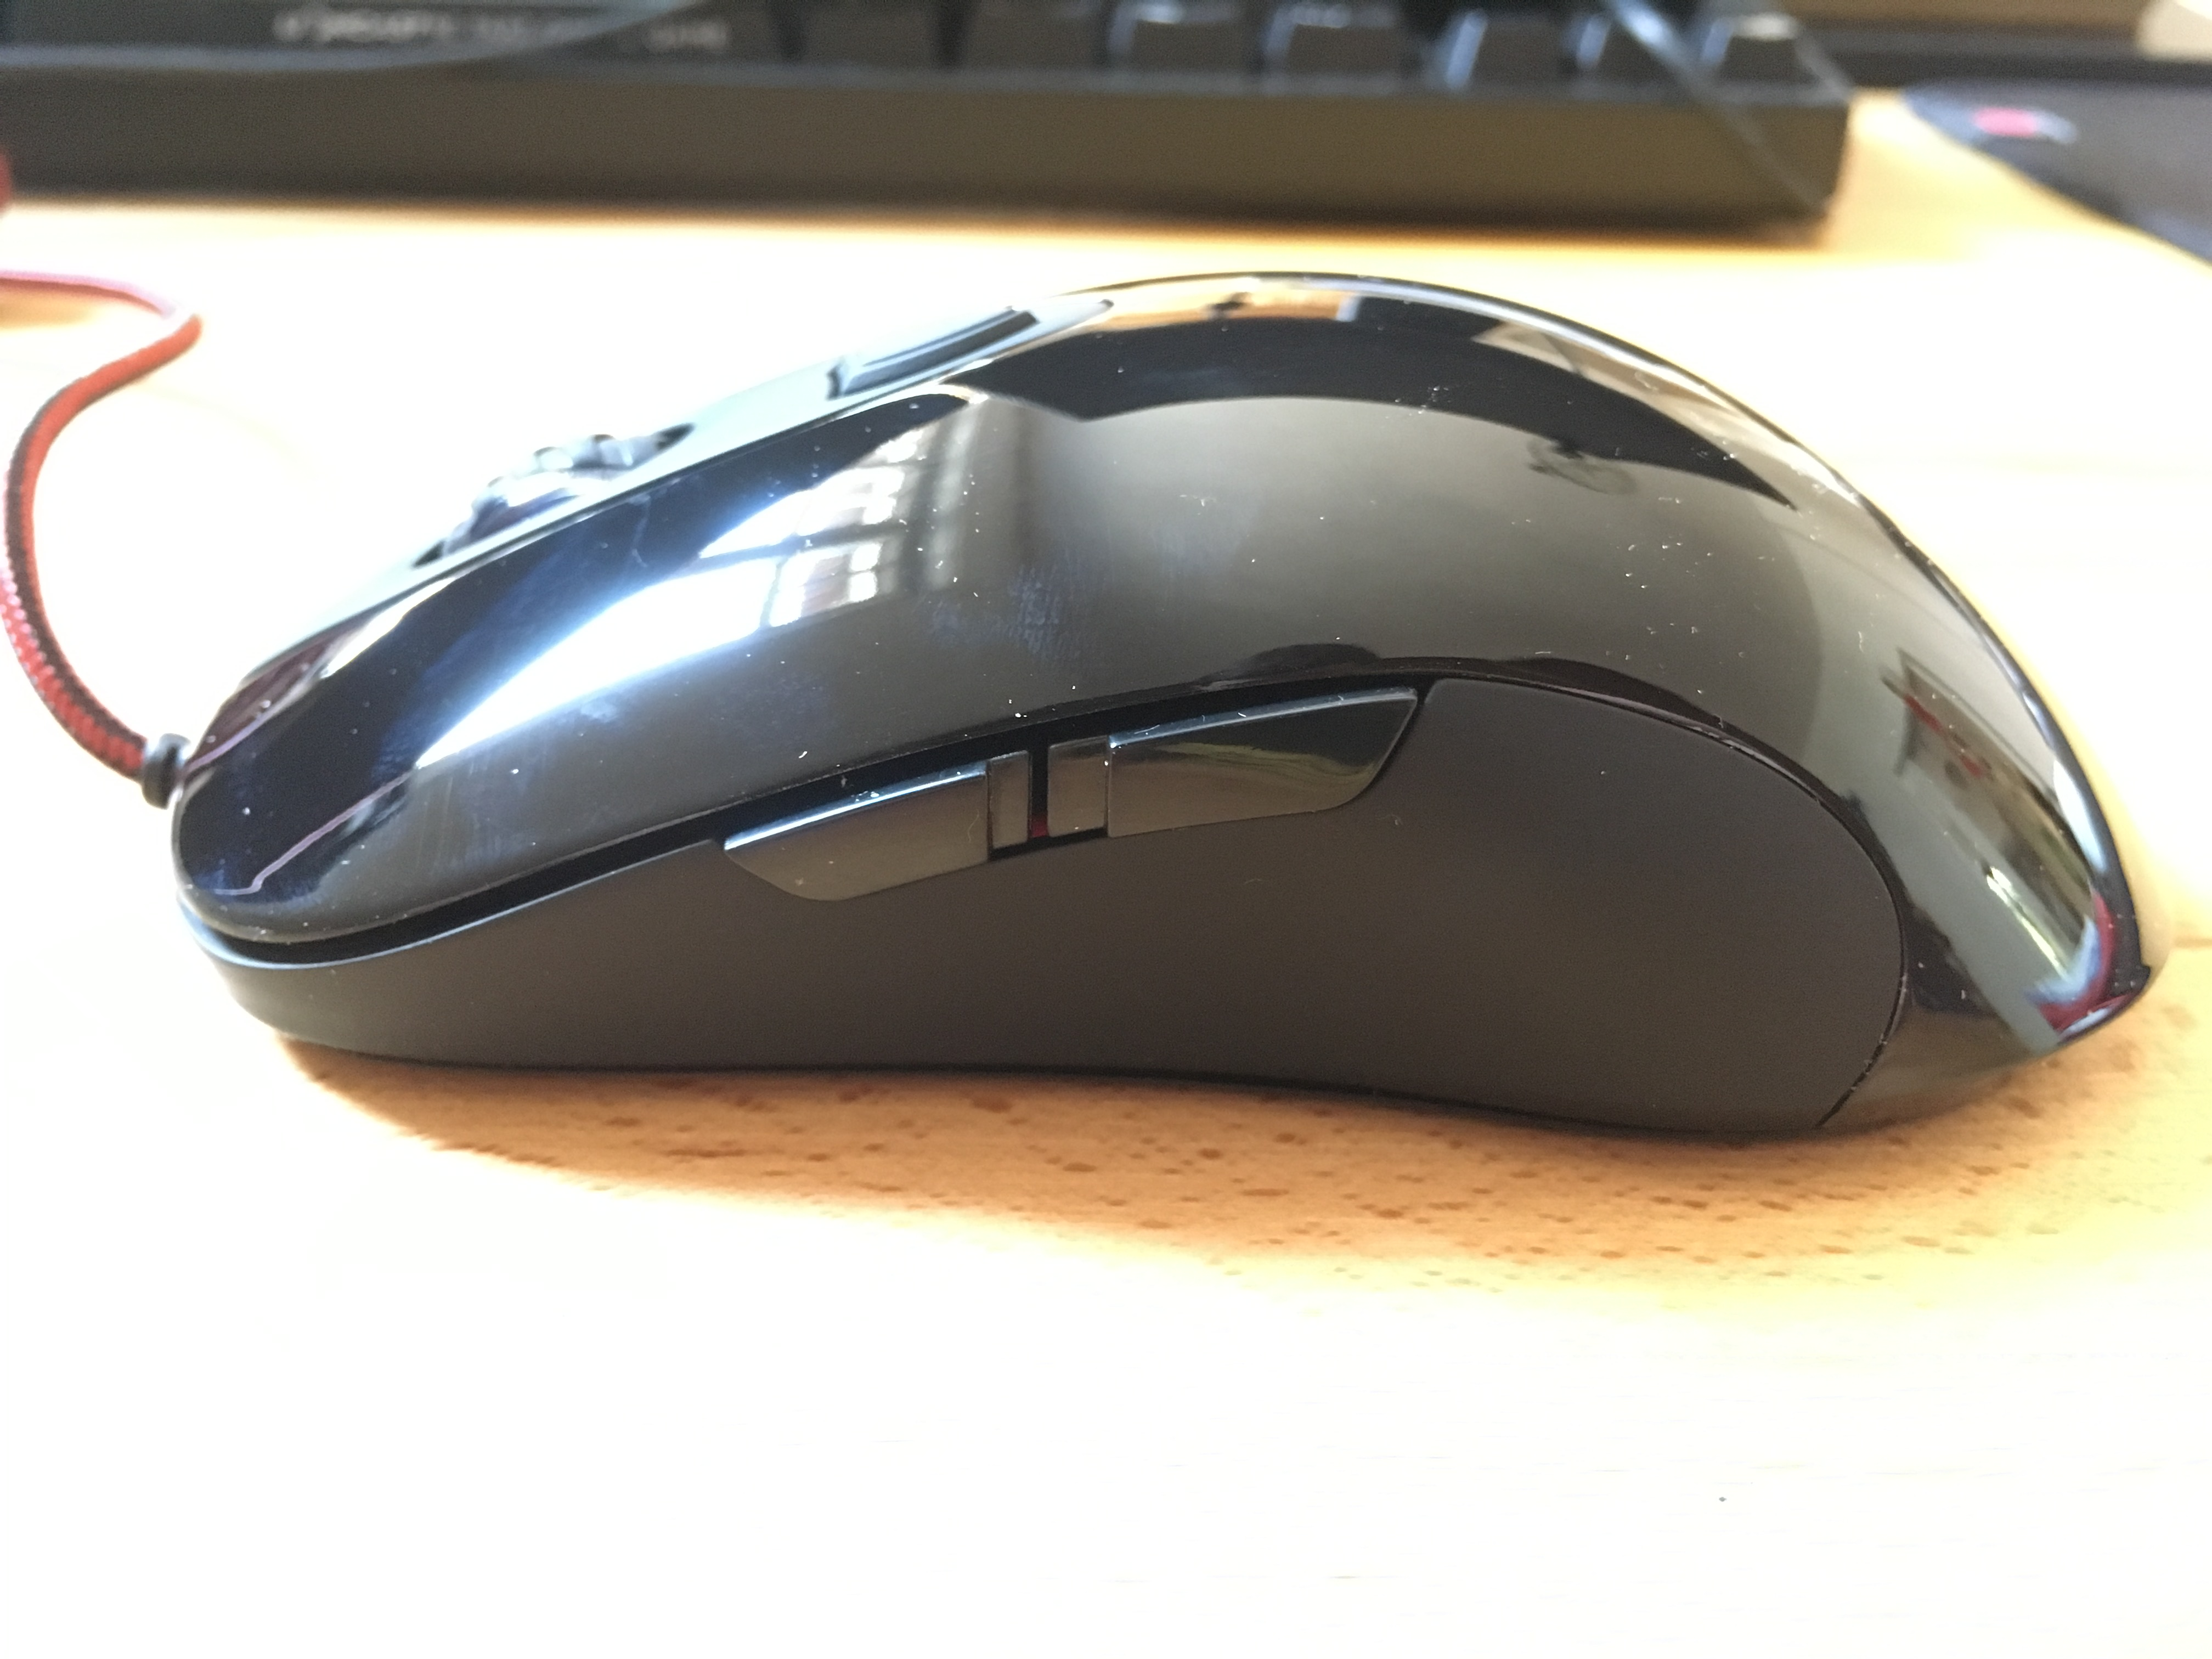 OCN Labs] Dream Machines DM1 Pro S Gaming Mouse Review - by